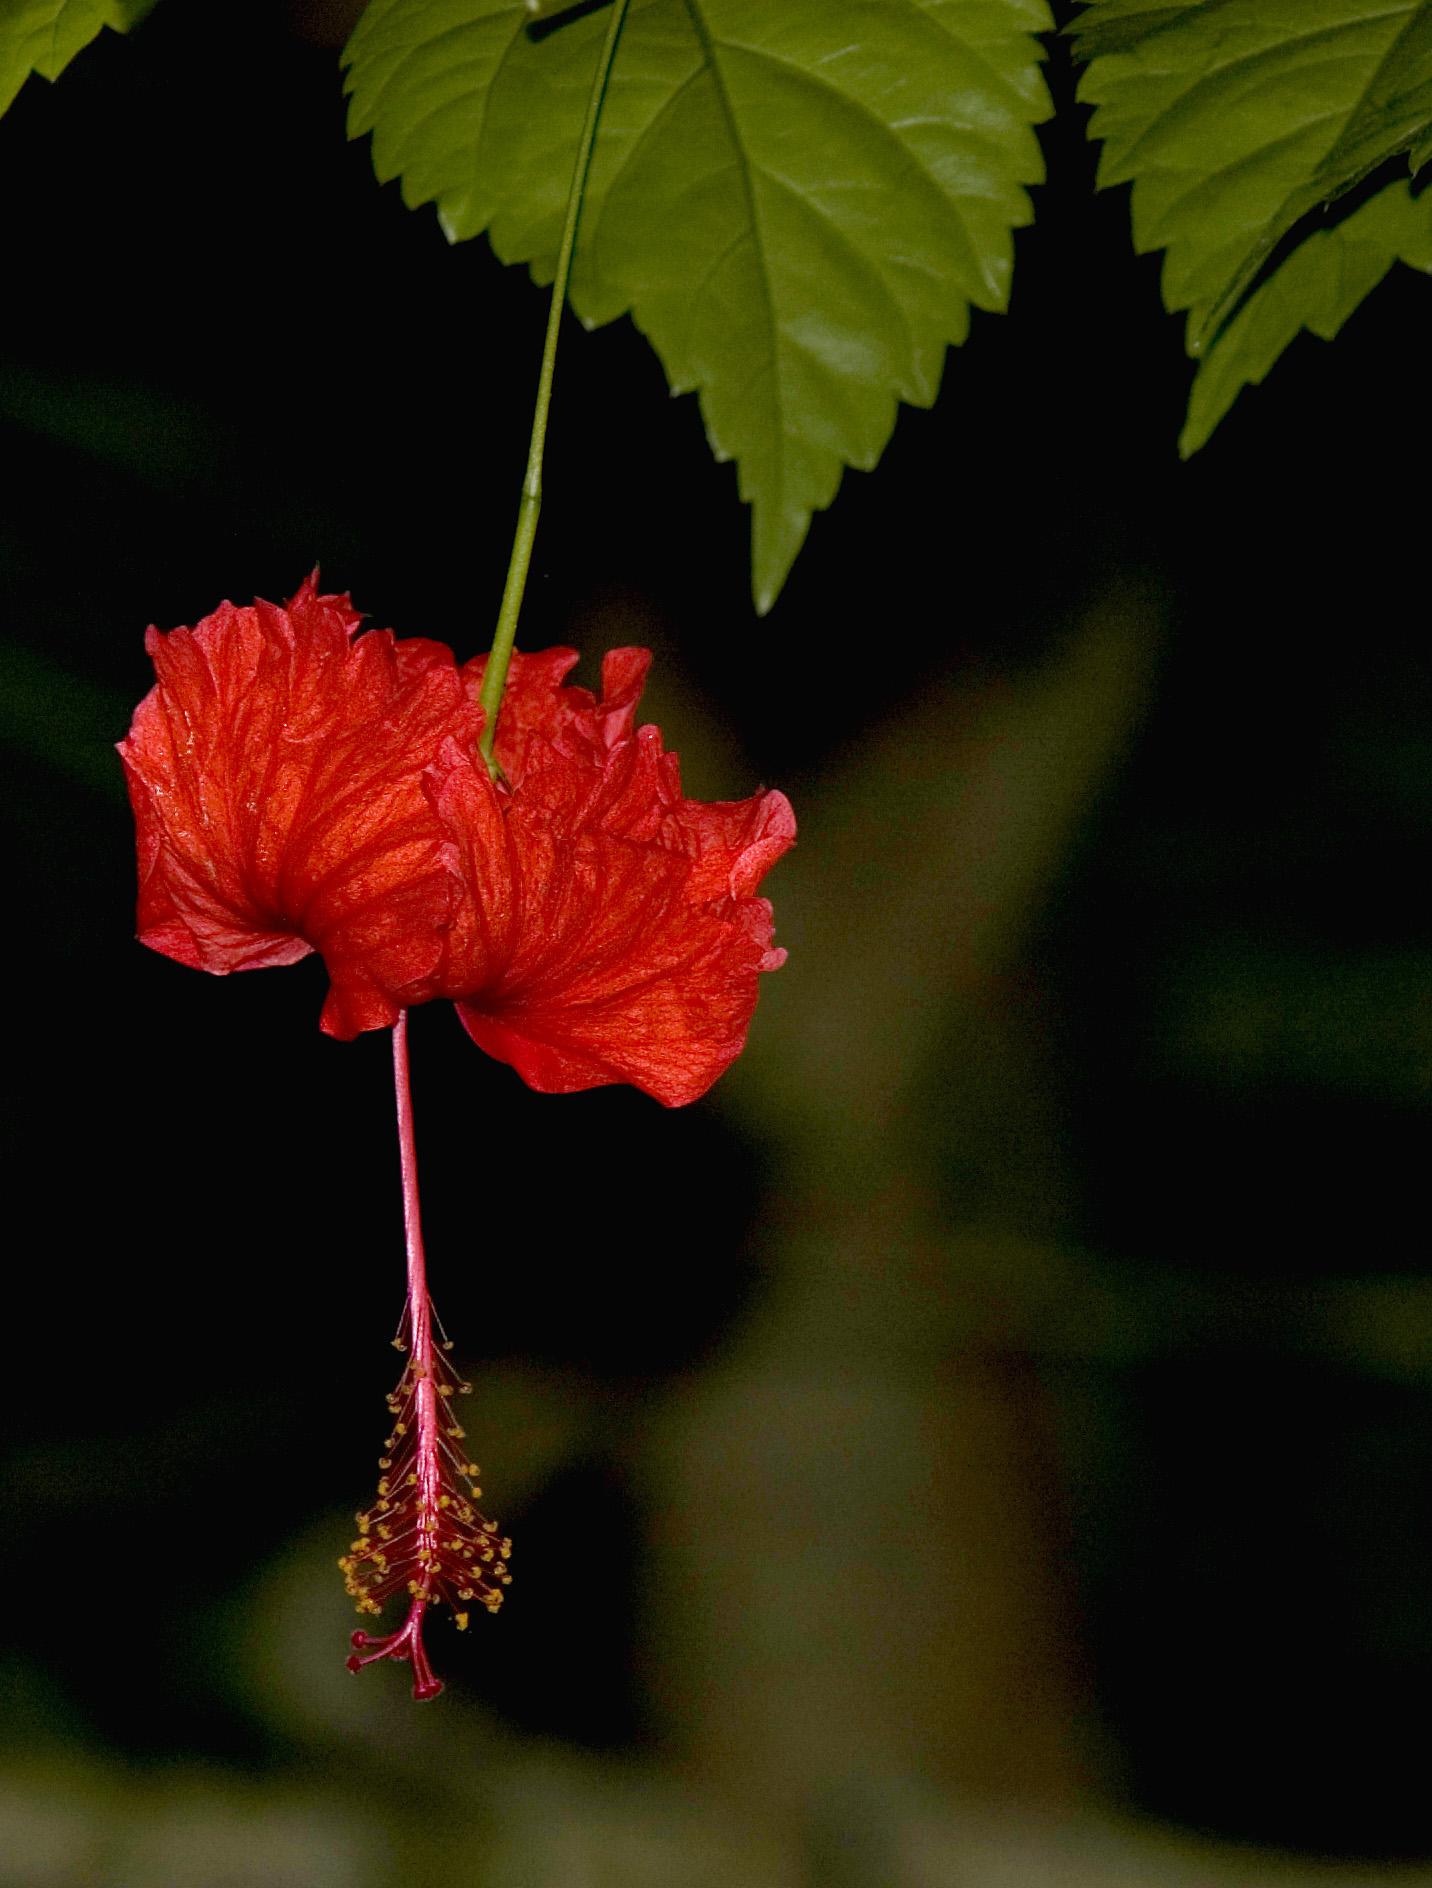 Hibiscus flower 2253 stockarch free stock photos accept license and download image izmirmasajfo